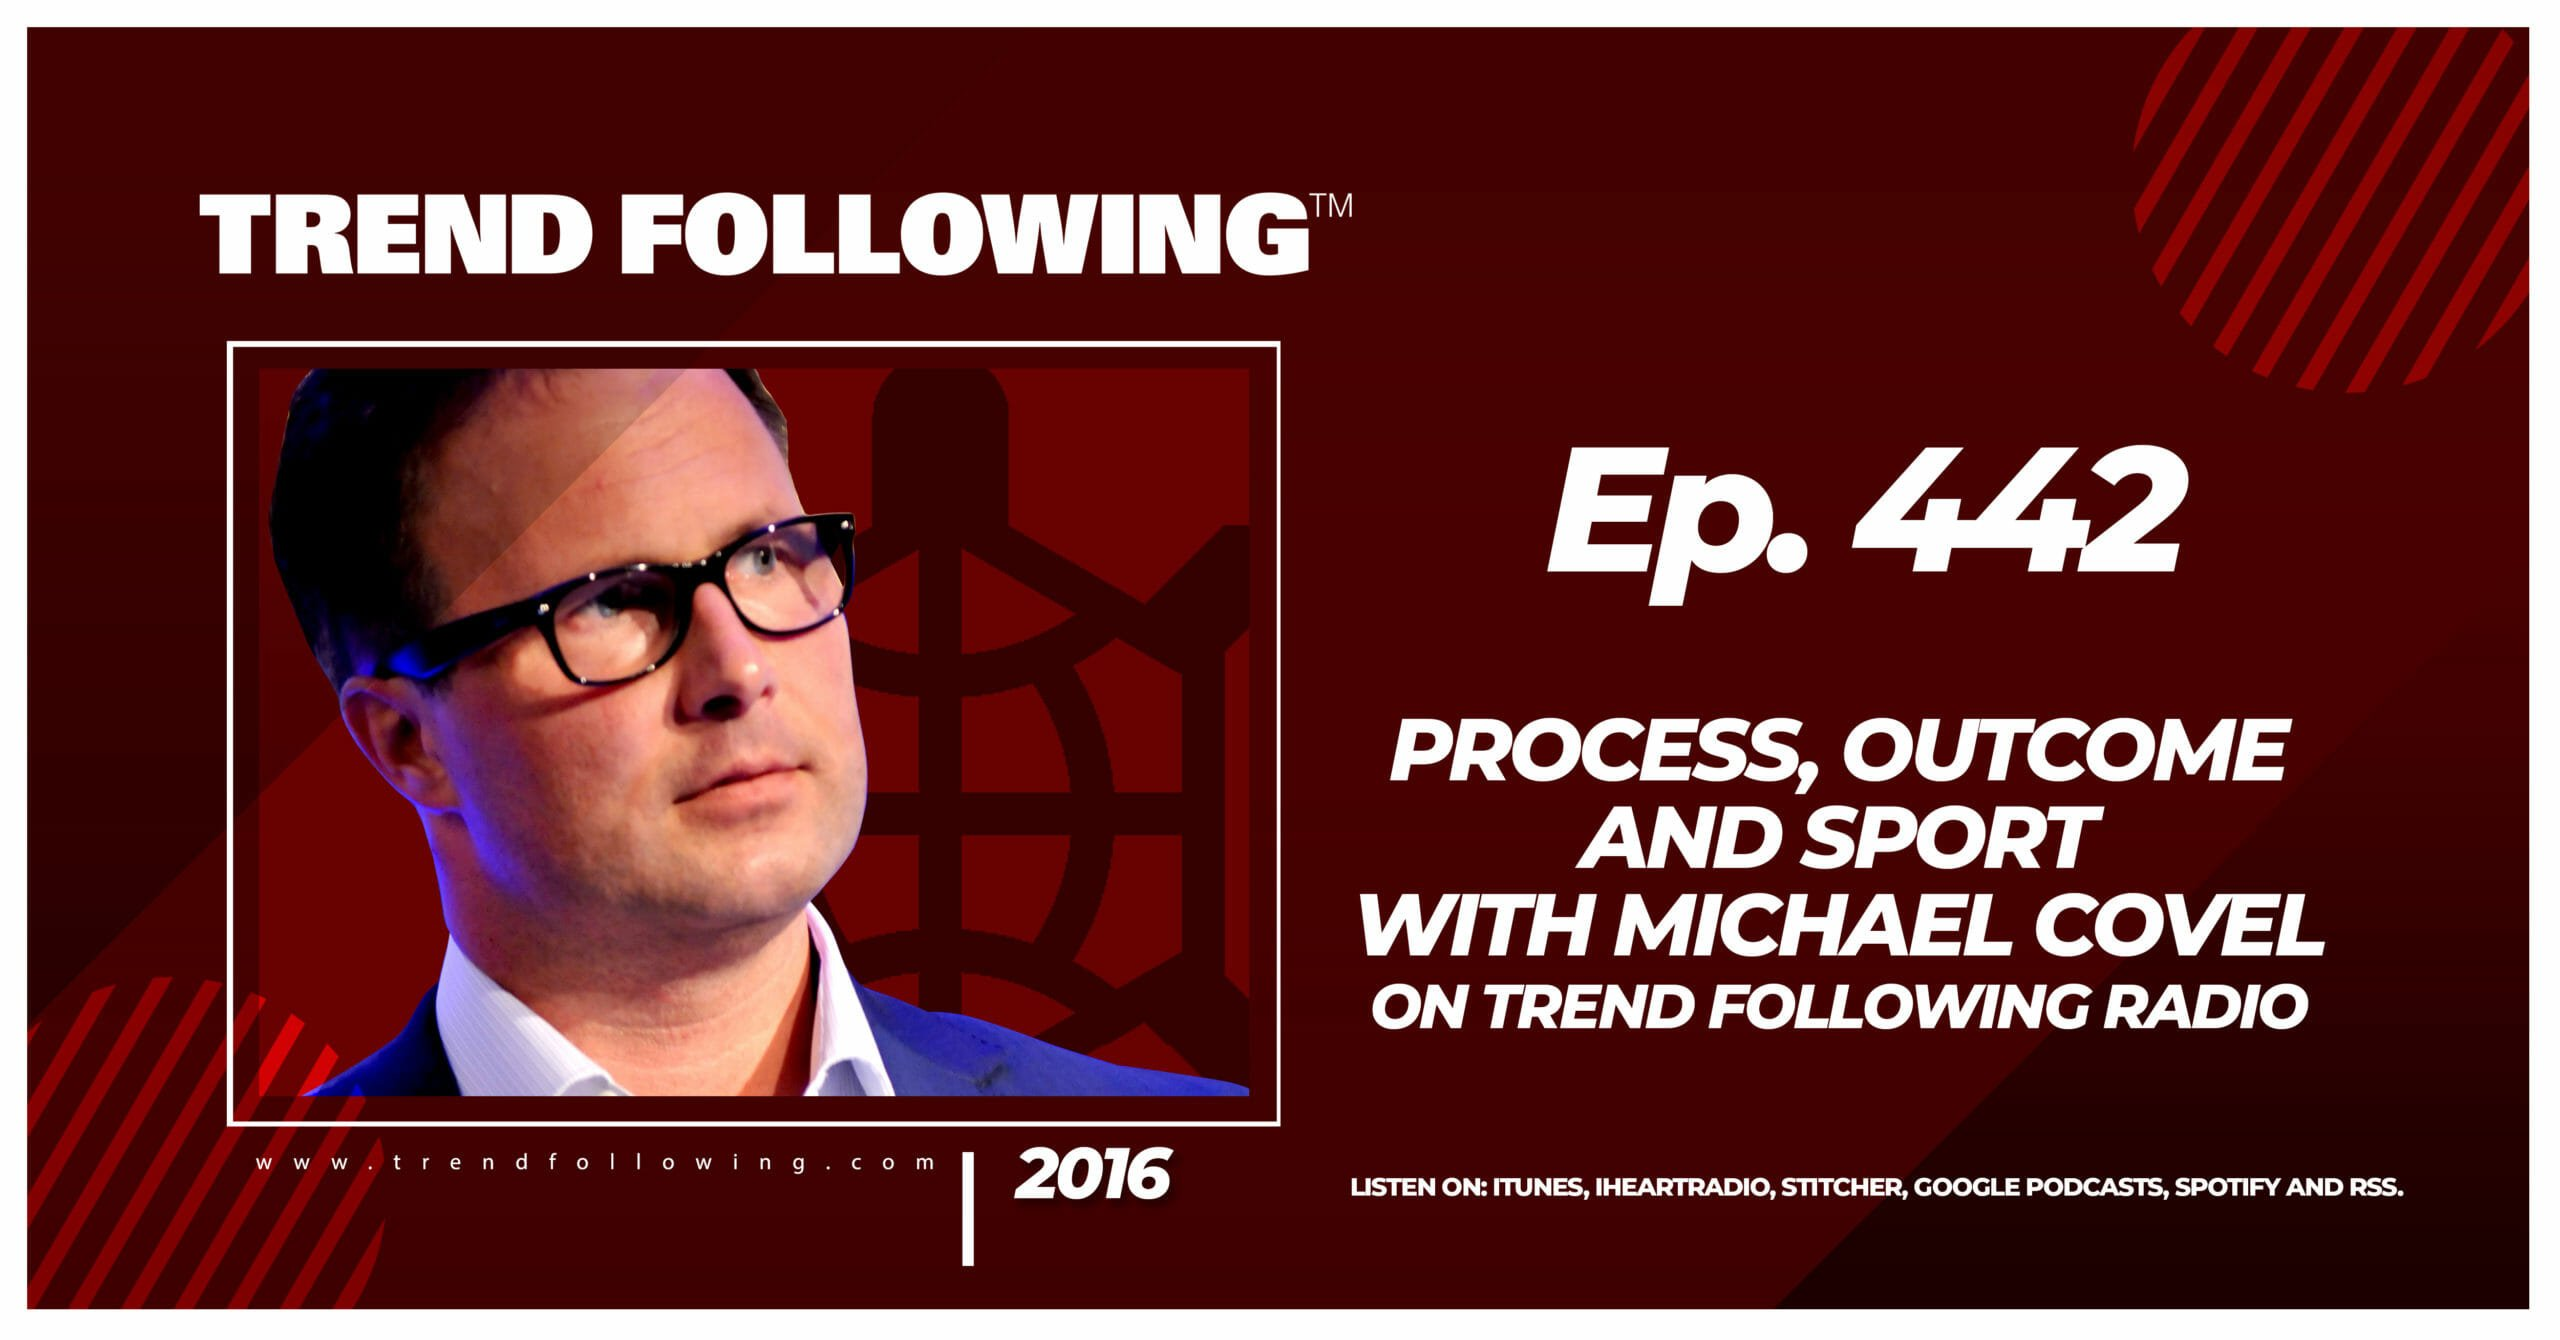 Process, Outcome and Sport with Michael Covel on Trend Following Radio